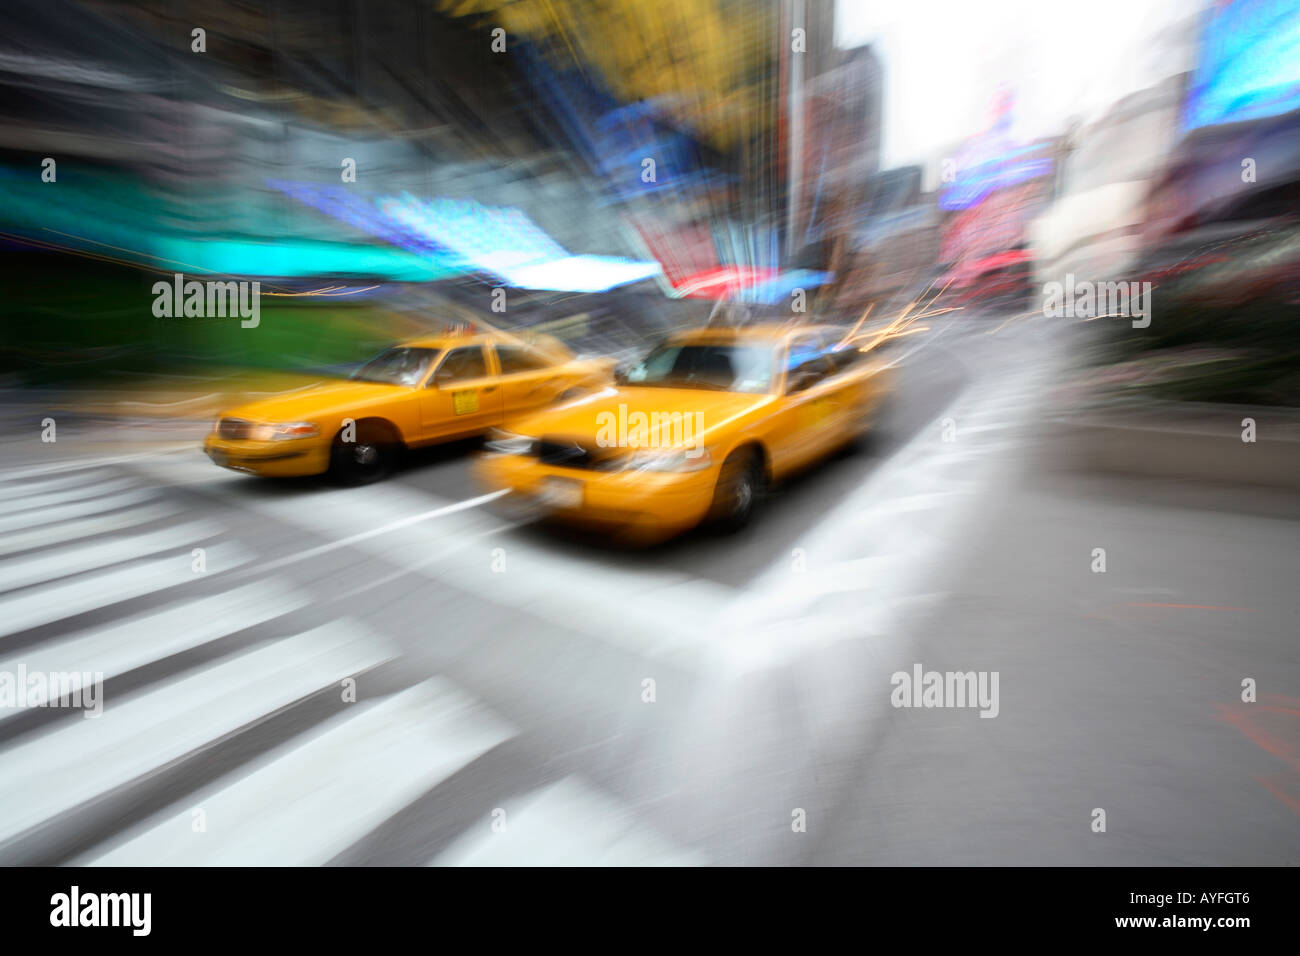 Taxi Cabs, New York City - Stock Image